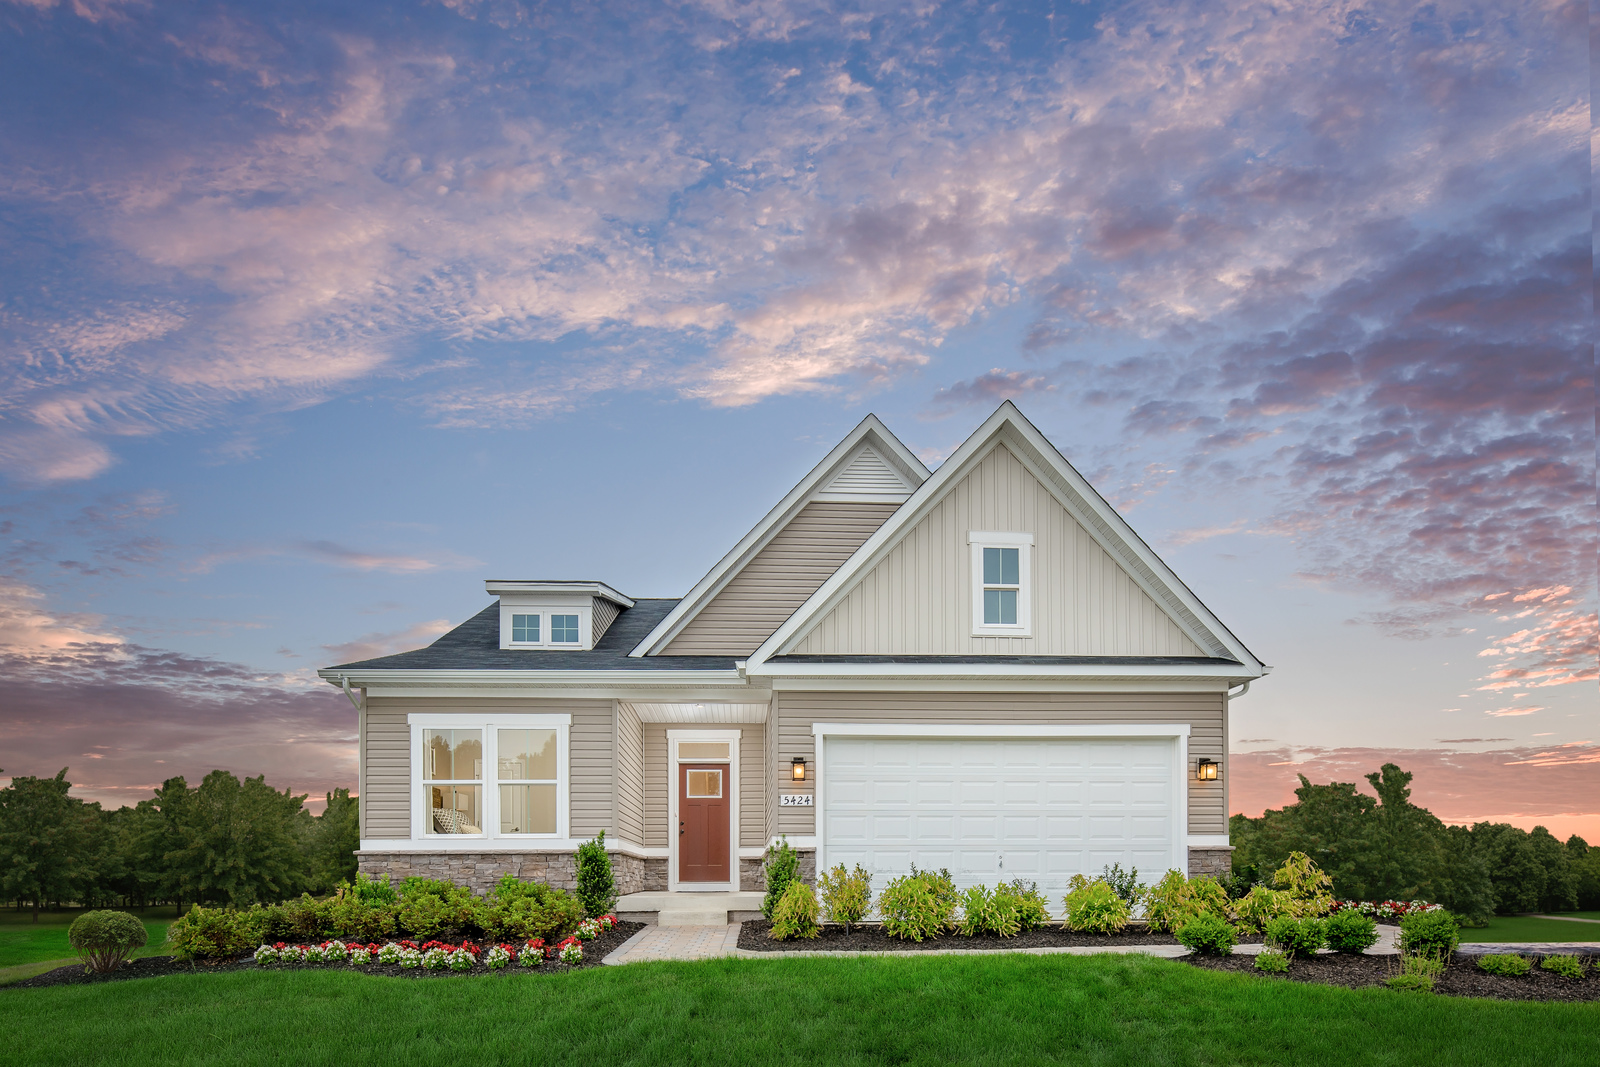 New Homes for sale at Windmill Woods in Ocean View, DE within the